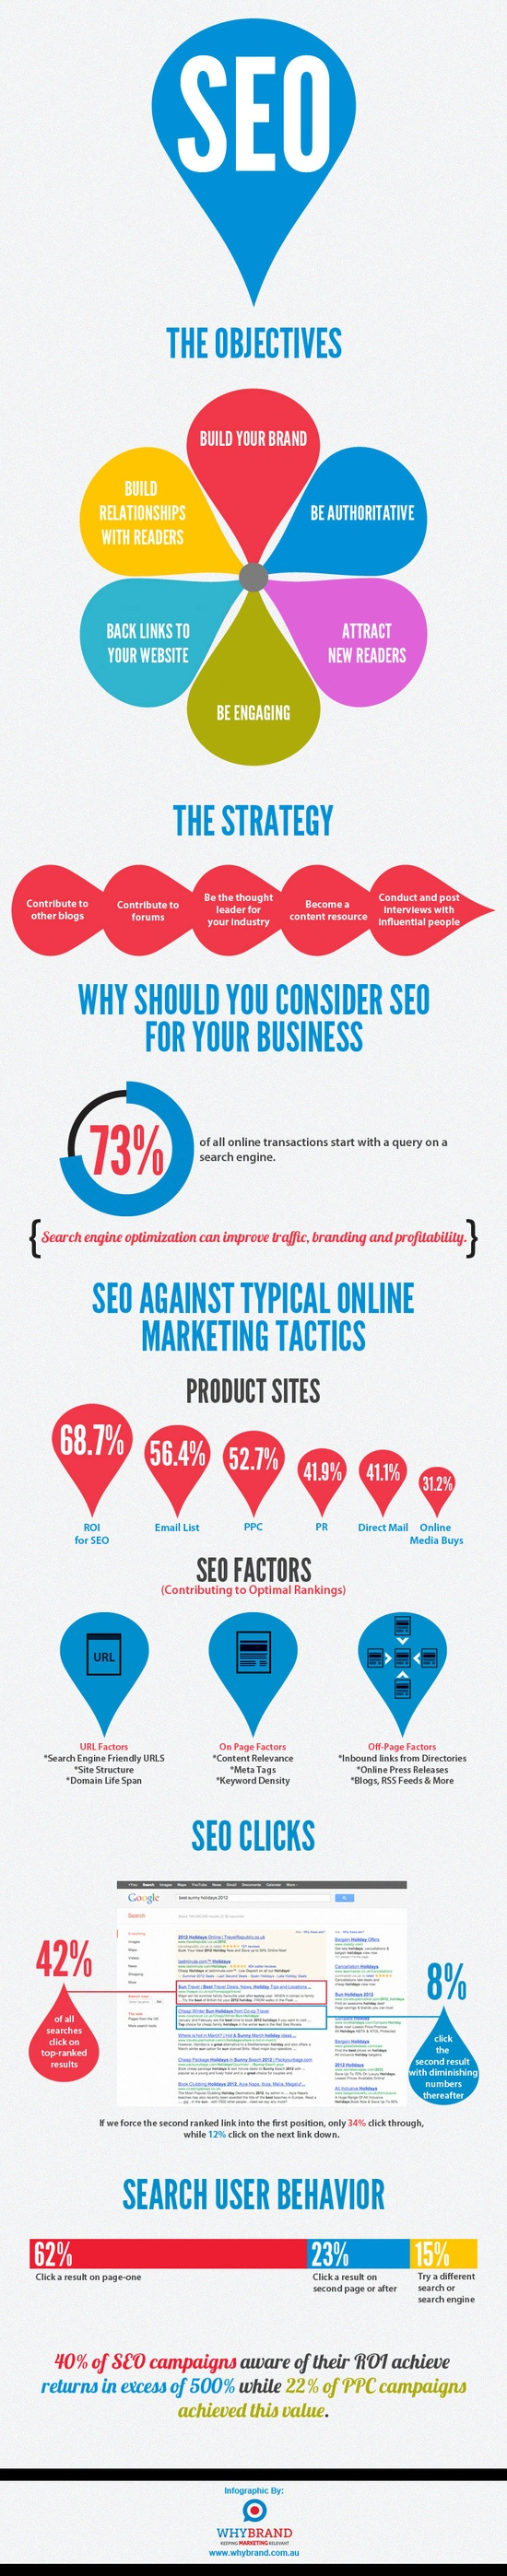 seo-the-objectives